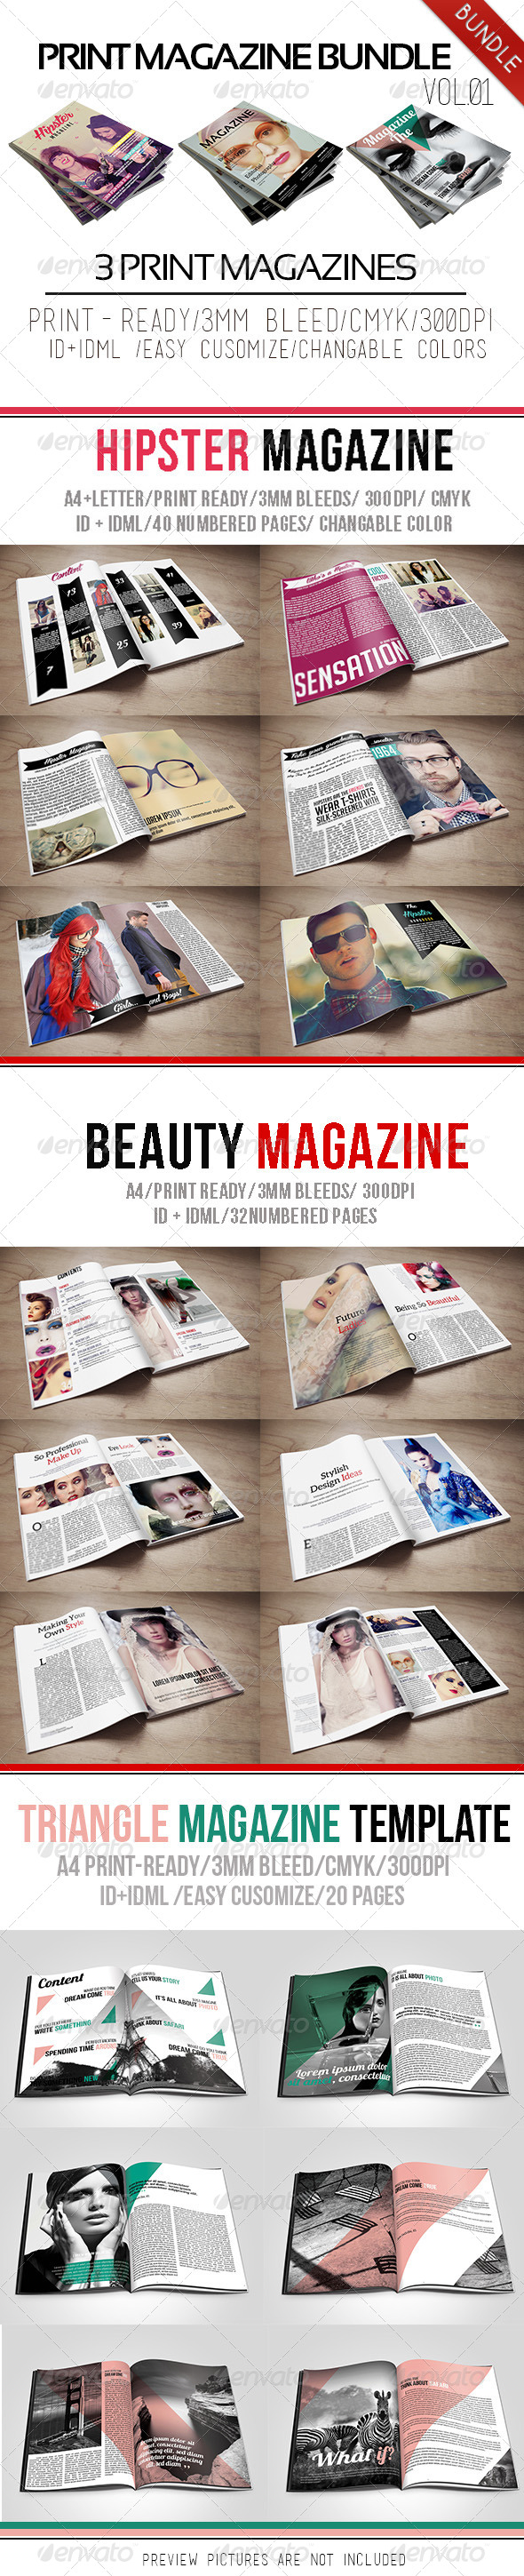 GraphicRiver Print Magazine Bundle Vol.01 6395017